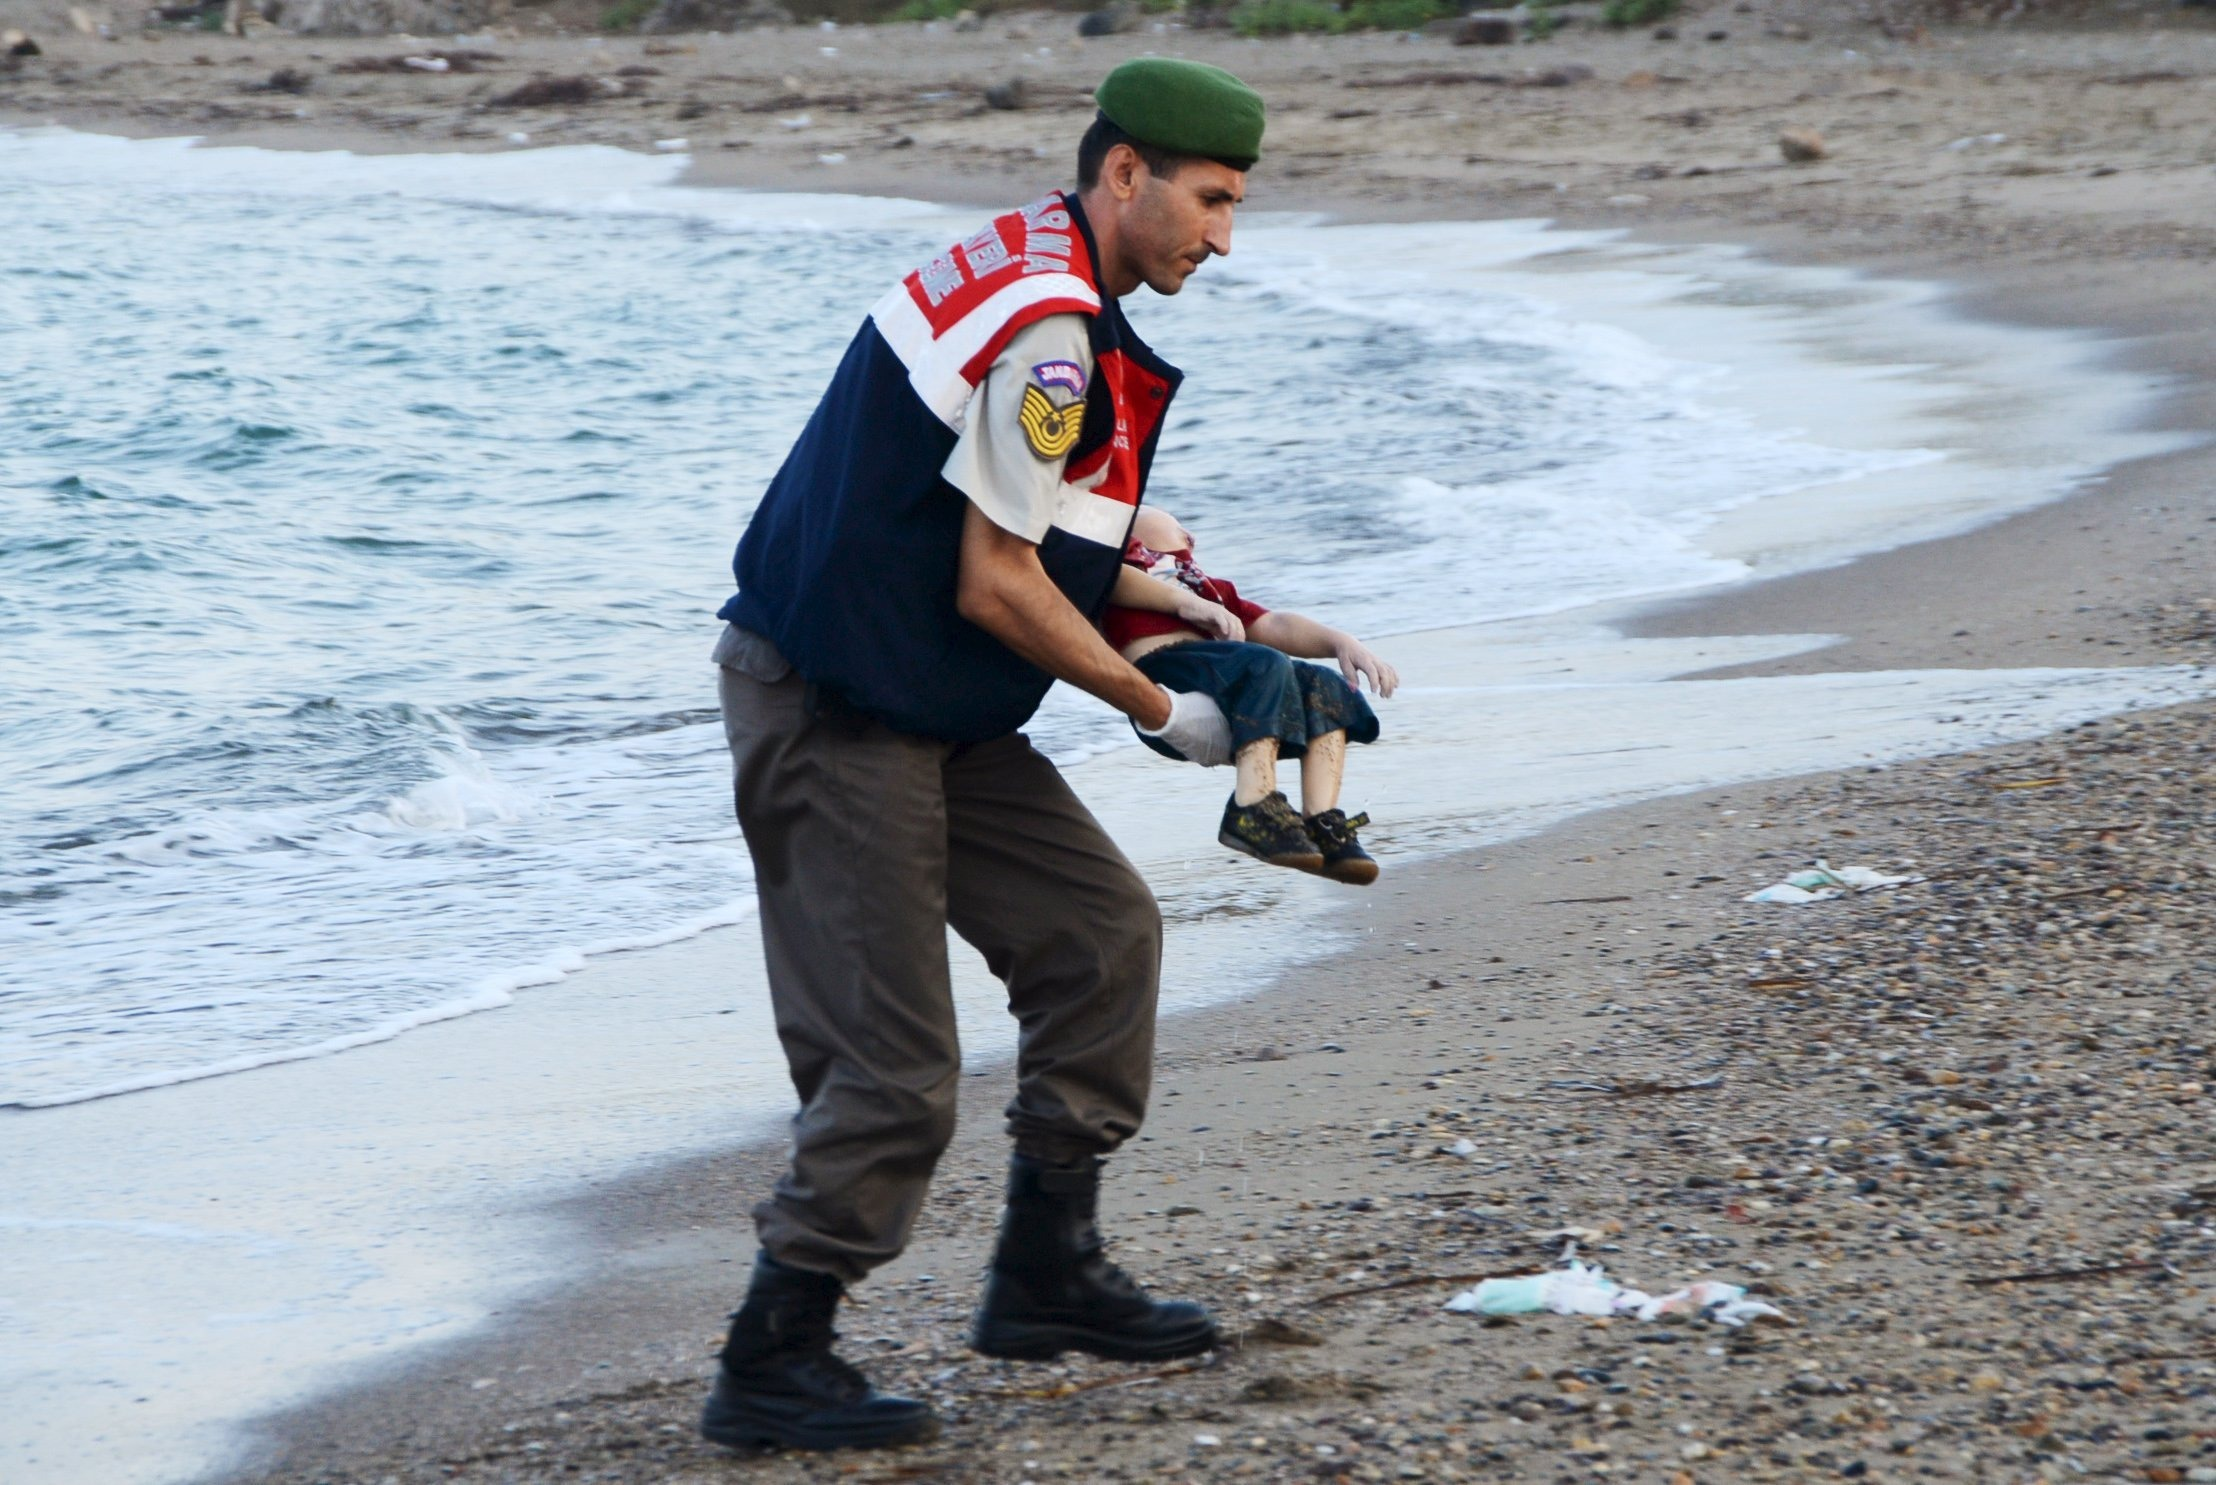 A Turkish gendarme carries the body of Alan Kurdi, 3, who drowned along with his brother Galip, 5, and their mother, in a failed attempt to sail to the Greek island of Kos, in the coastal town of Bodrum, Turkey, on Sept. 2, 2015.